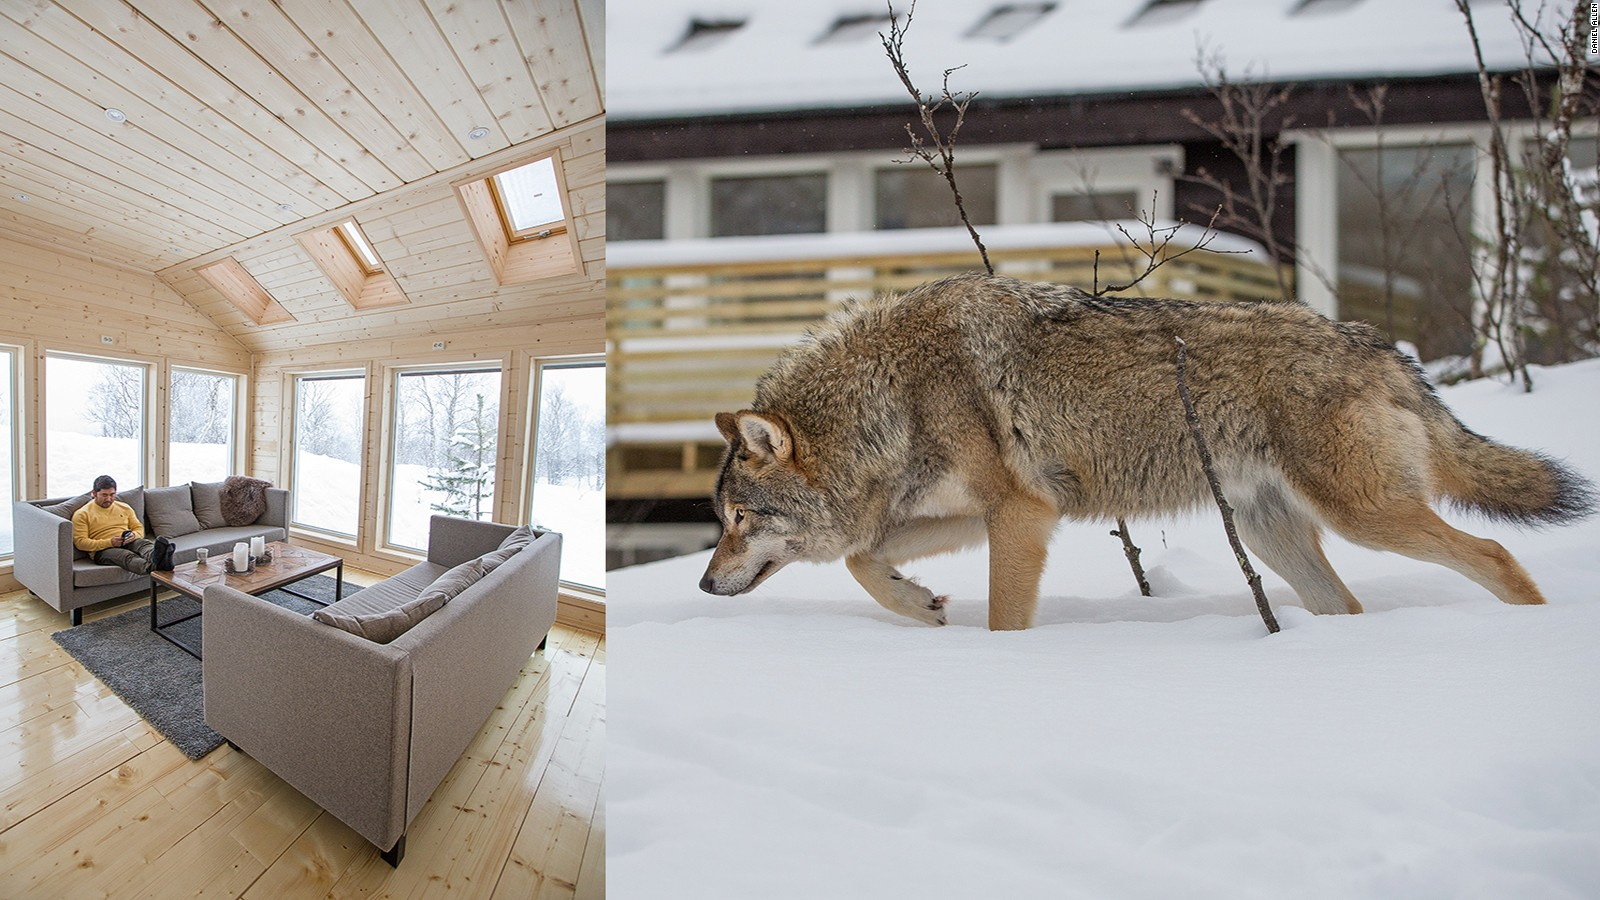 Opened in late 2015 at the Polar Park, Wolf Lodge is the world's first luxury accommodation situated inside an enclosure of wolves. Guests are often treated to a dramatic chorus of nocturnal howling, with the animals frequently approaching the lodge's large glass windows during the day and night.